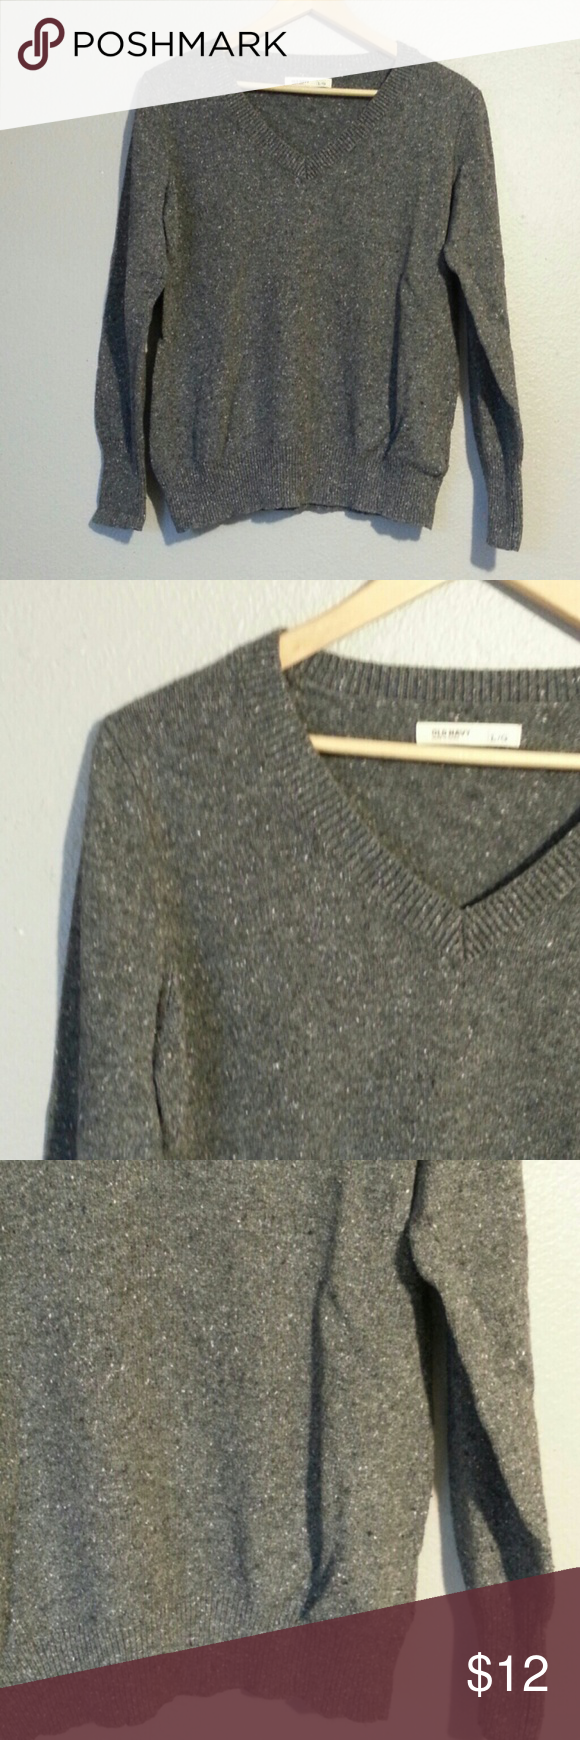 OLD NAVY GRAY SPECKLED V NECK SWEATER SIZE LARGE VERY CUTE GRAY COLOR WITH LITTLE SPECKLED DOTS OF WHITE AND BLACK  HAS A LITTLE BIT OF PILLING Old Navy Sweaters V-Necks